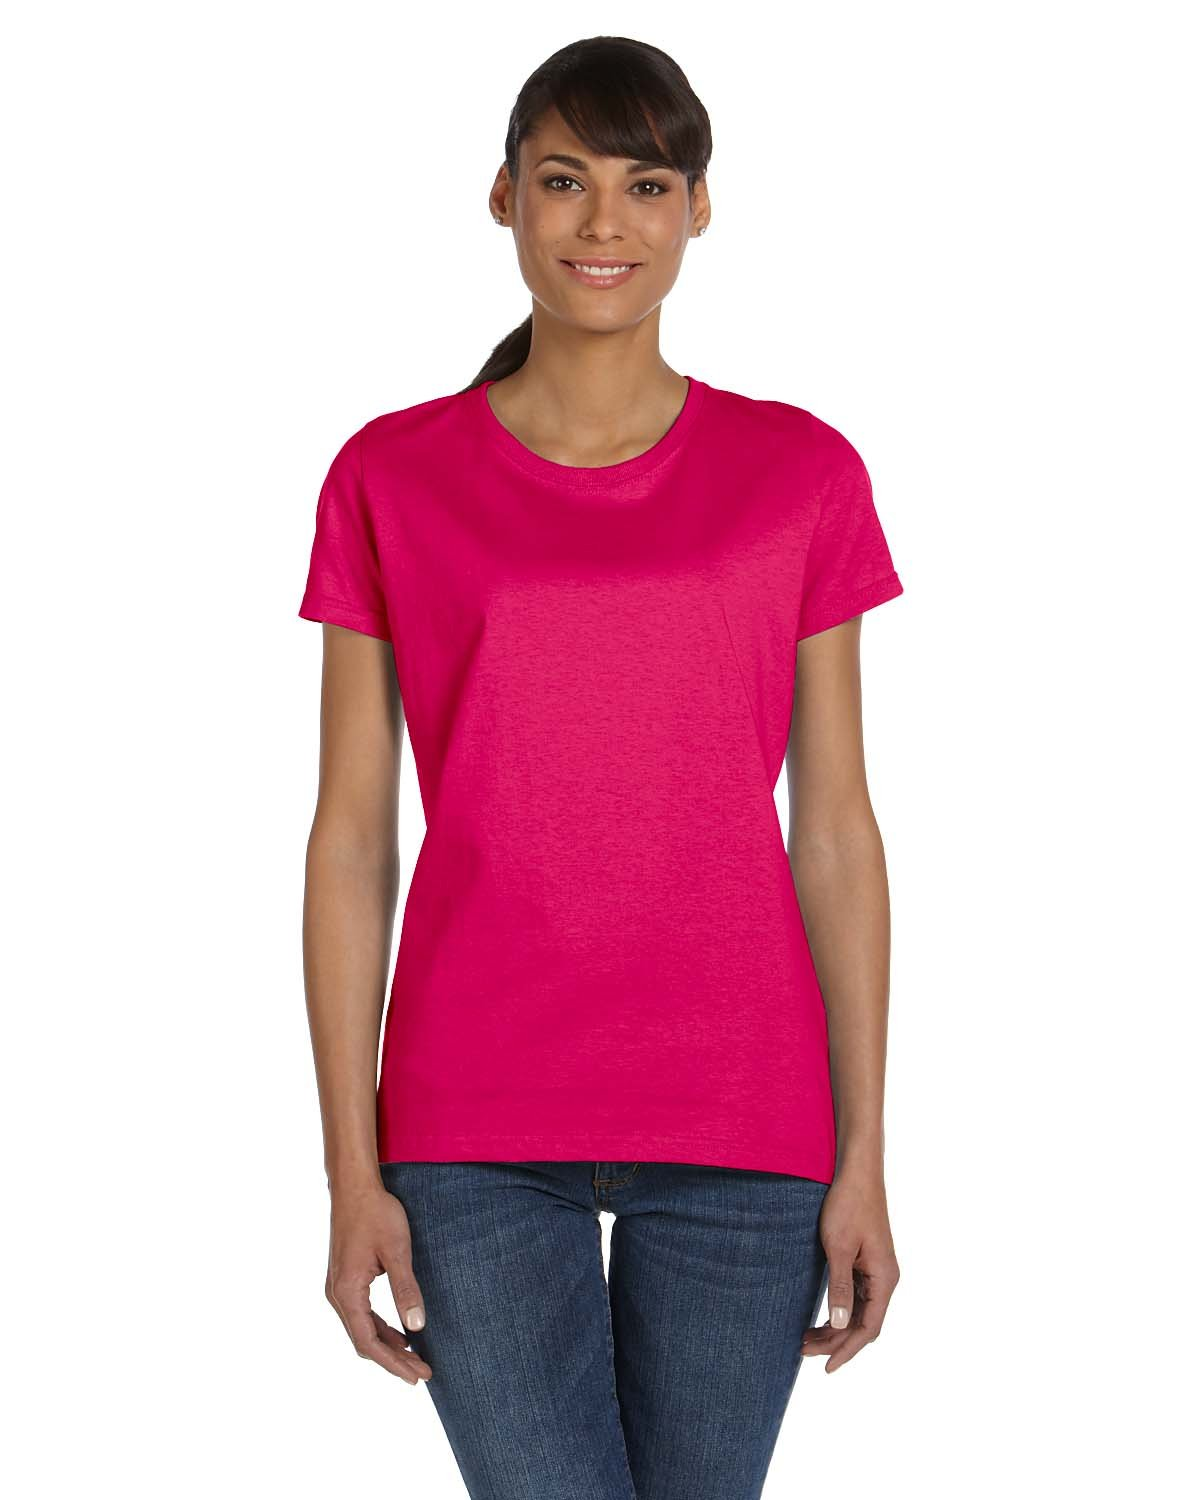 Fruit of the Loom Ladies' HD Cotton™ T-Shirt CYBER PINK